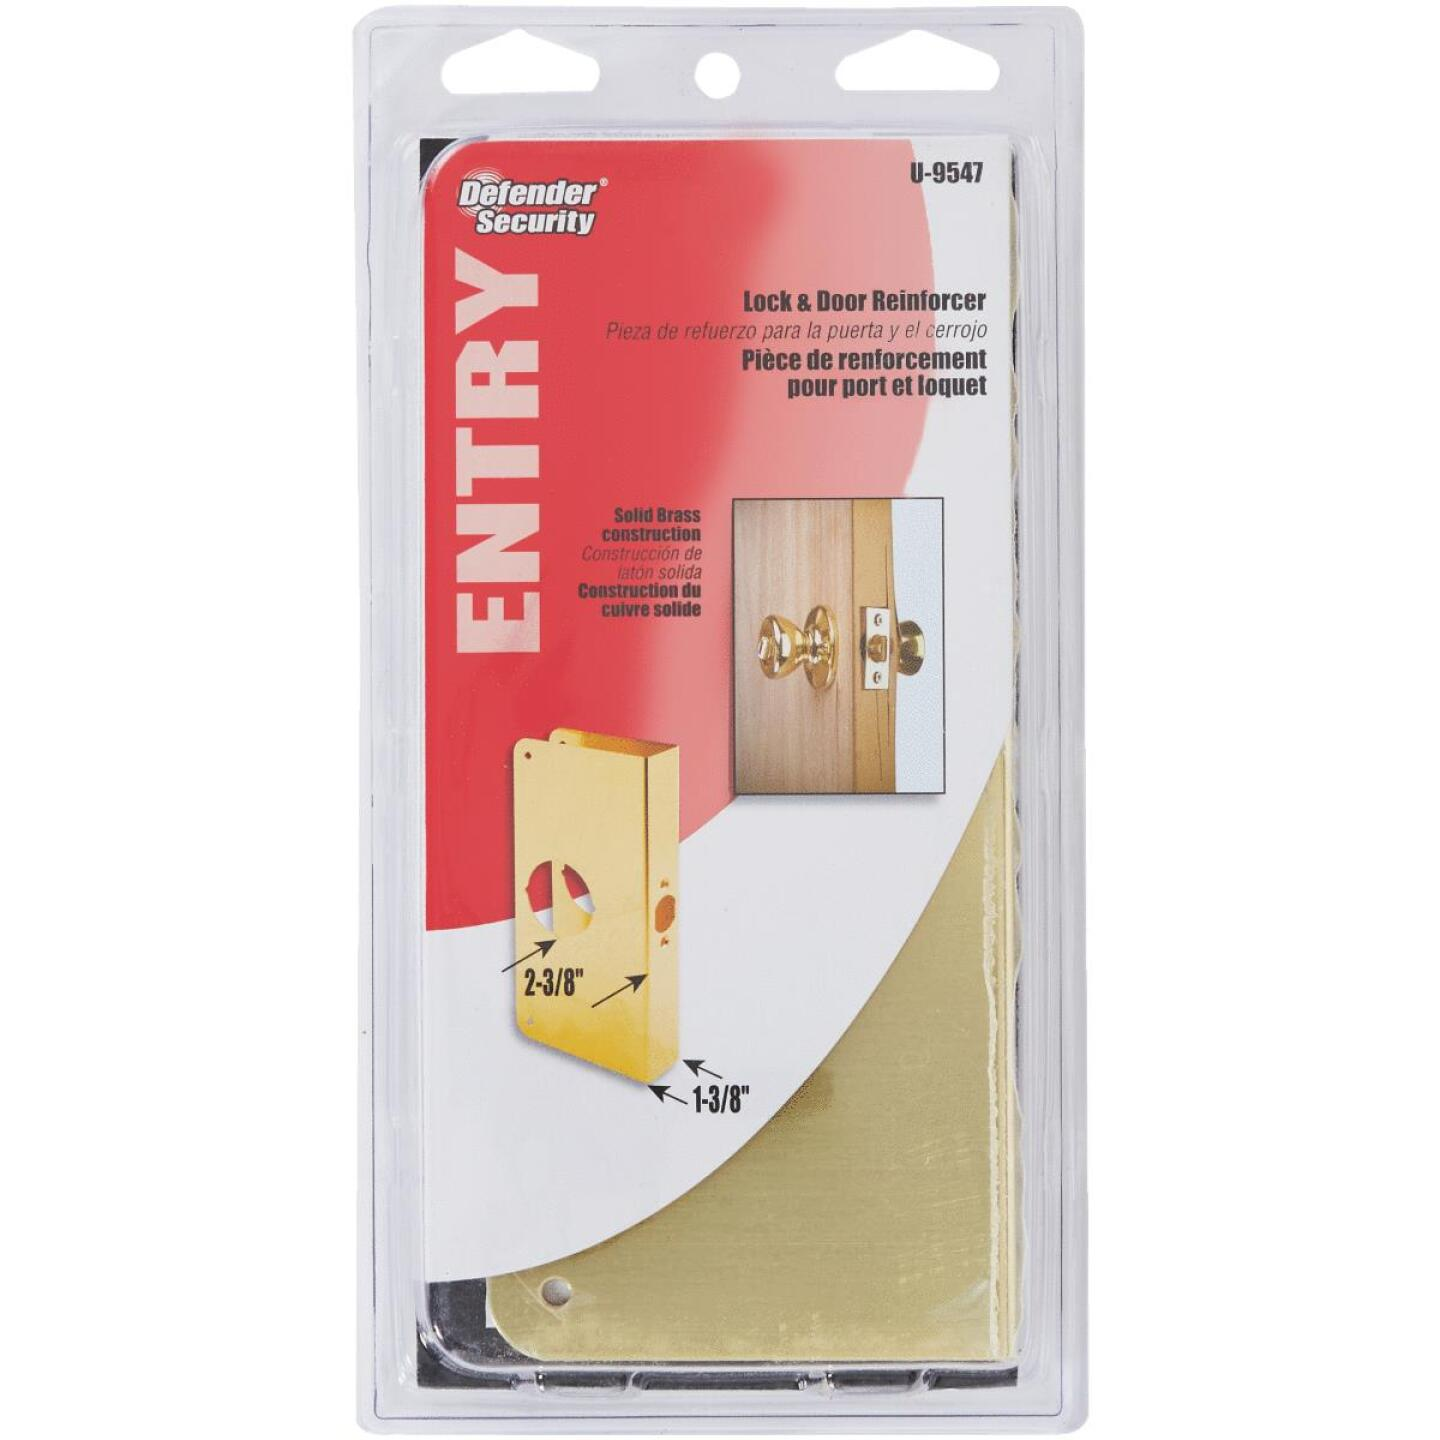 Defender Security 1-3/8 In. x 2-3/8 In. Brass Door Reinforcer Image 3